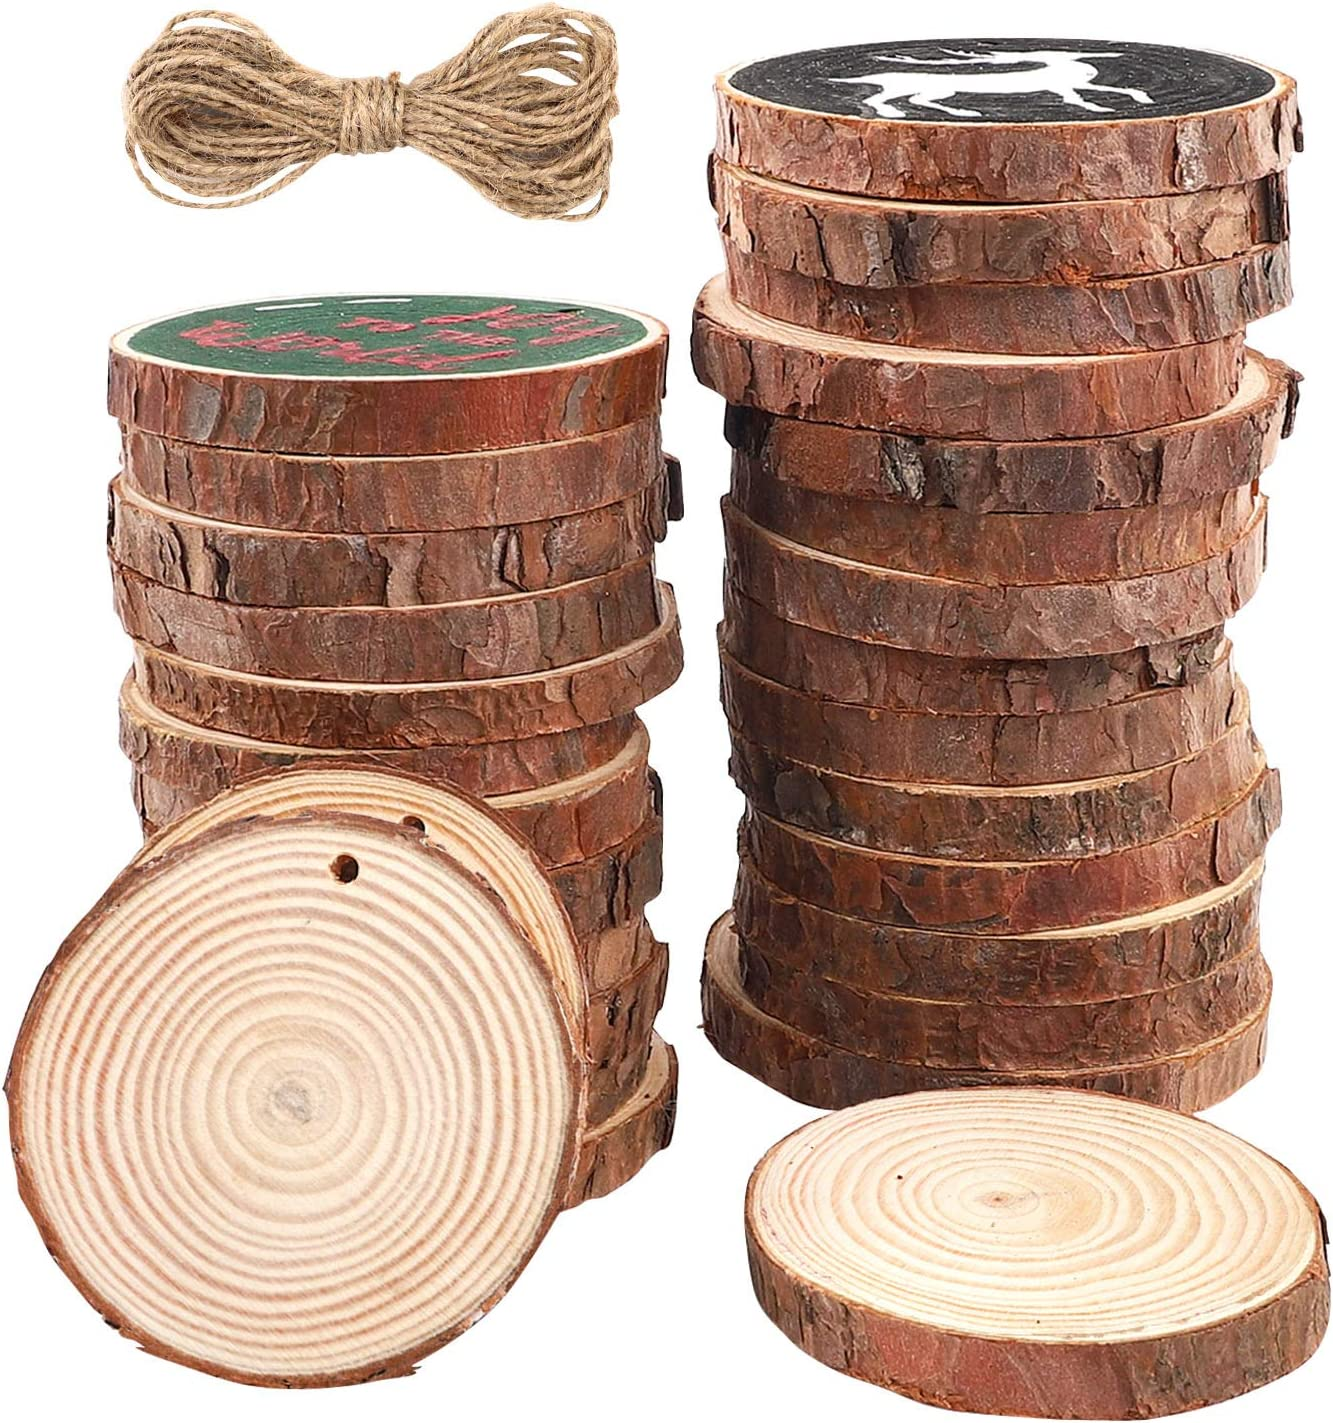 Funarty Natural Wood Slices 36pcs 3.1-3.5 Inches Craft Wood Kit Unfinished Predrilled with Hole Wooden Circles for Arts Christmas Ornaments DIY Crafts